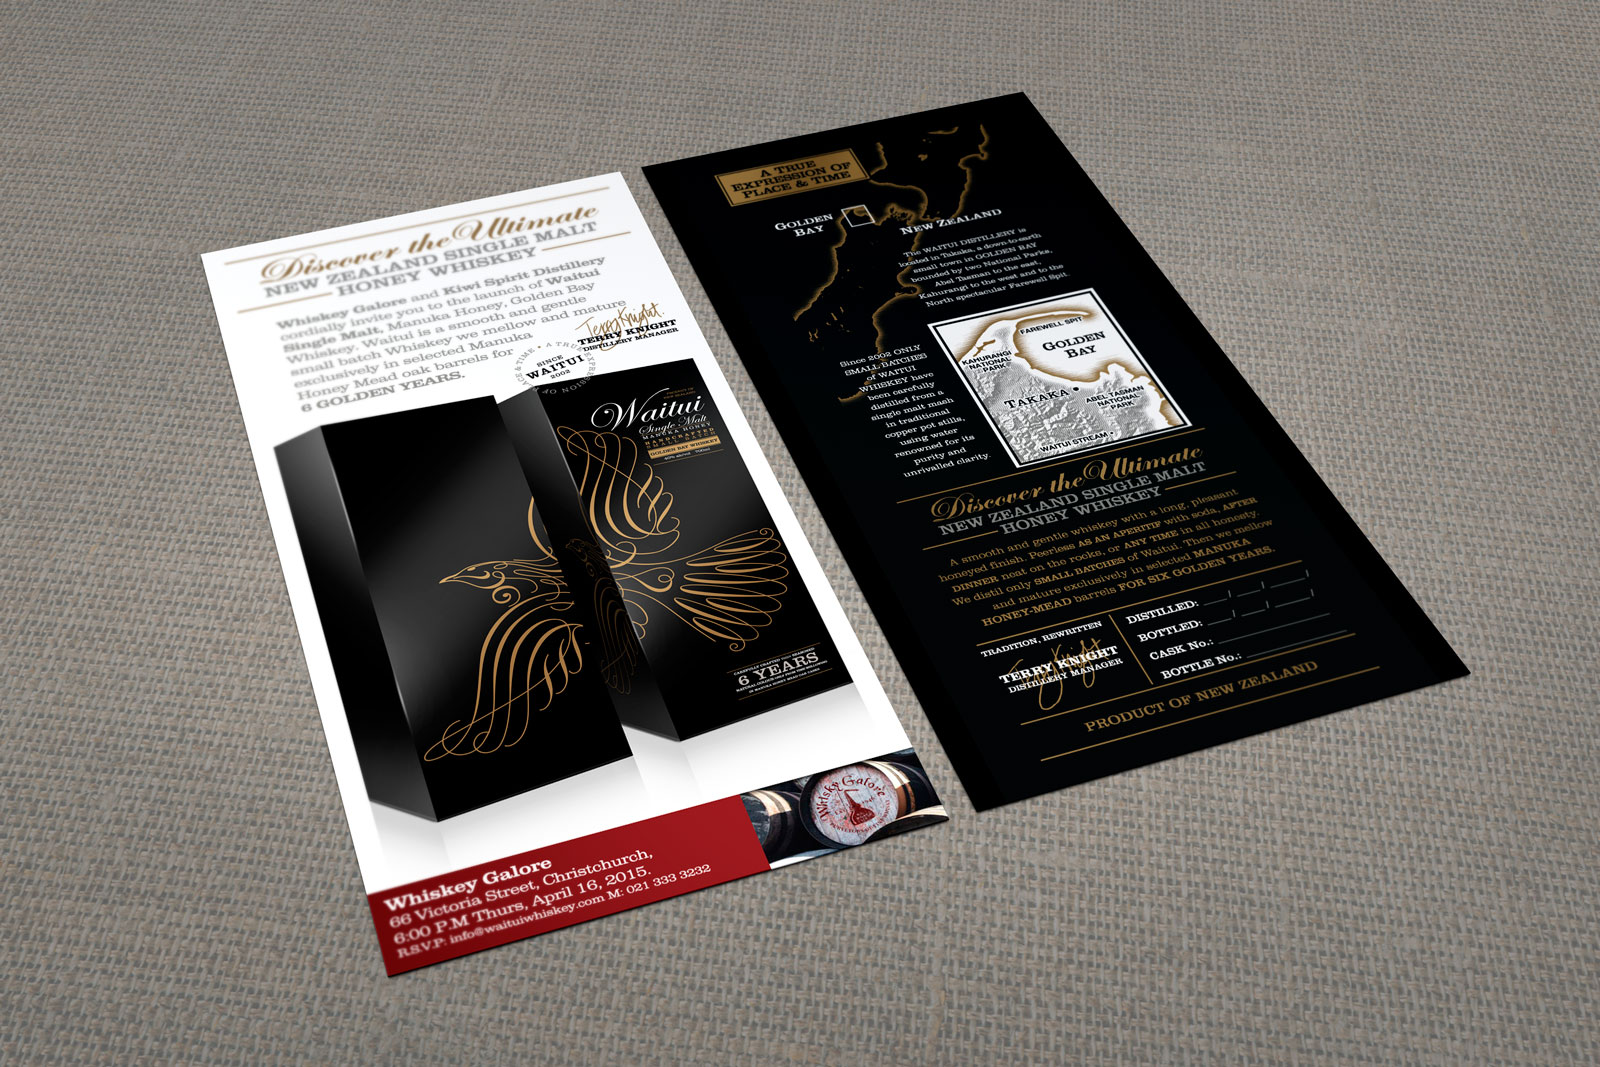 """Kiwi Spirit / Whiskey Galore co-branded launch event invitation. Front and rear view of digitally printed full colour two sided DL card mock up. """"Discover the Ultimate New Zealand Single Malt Honey Whiskey""""."""